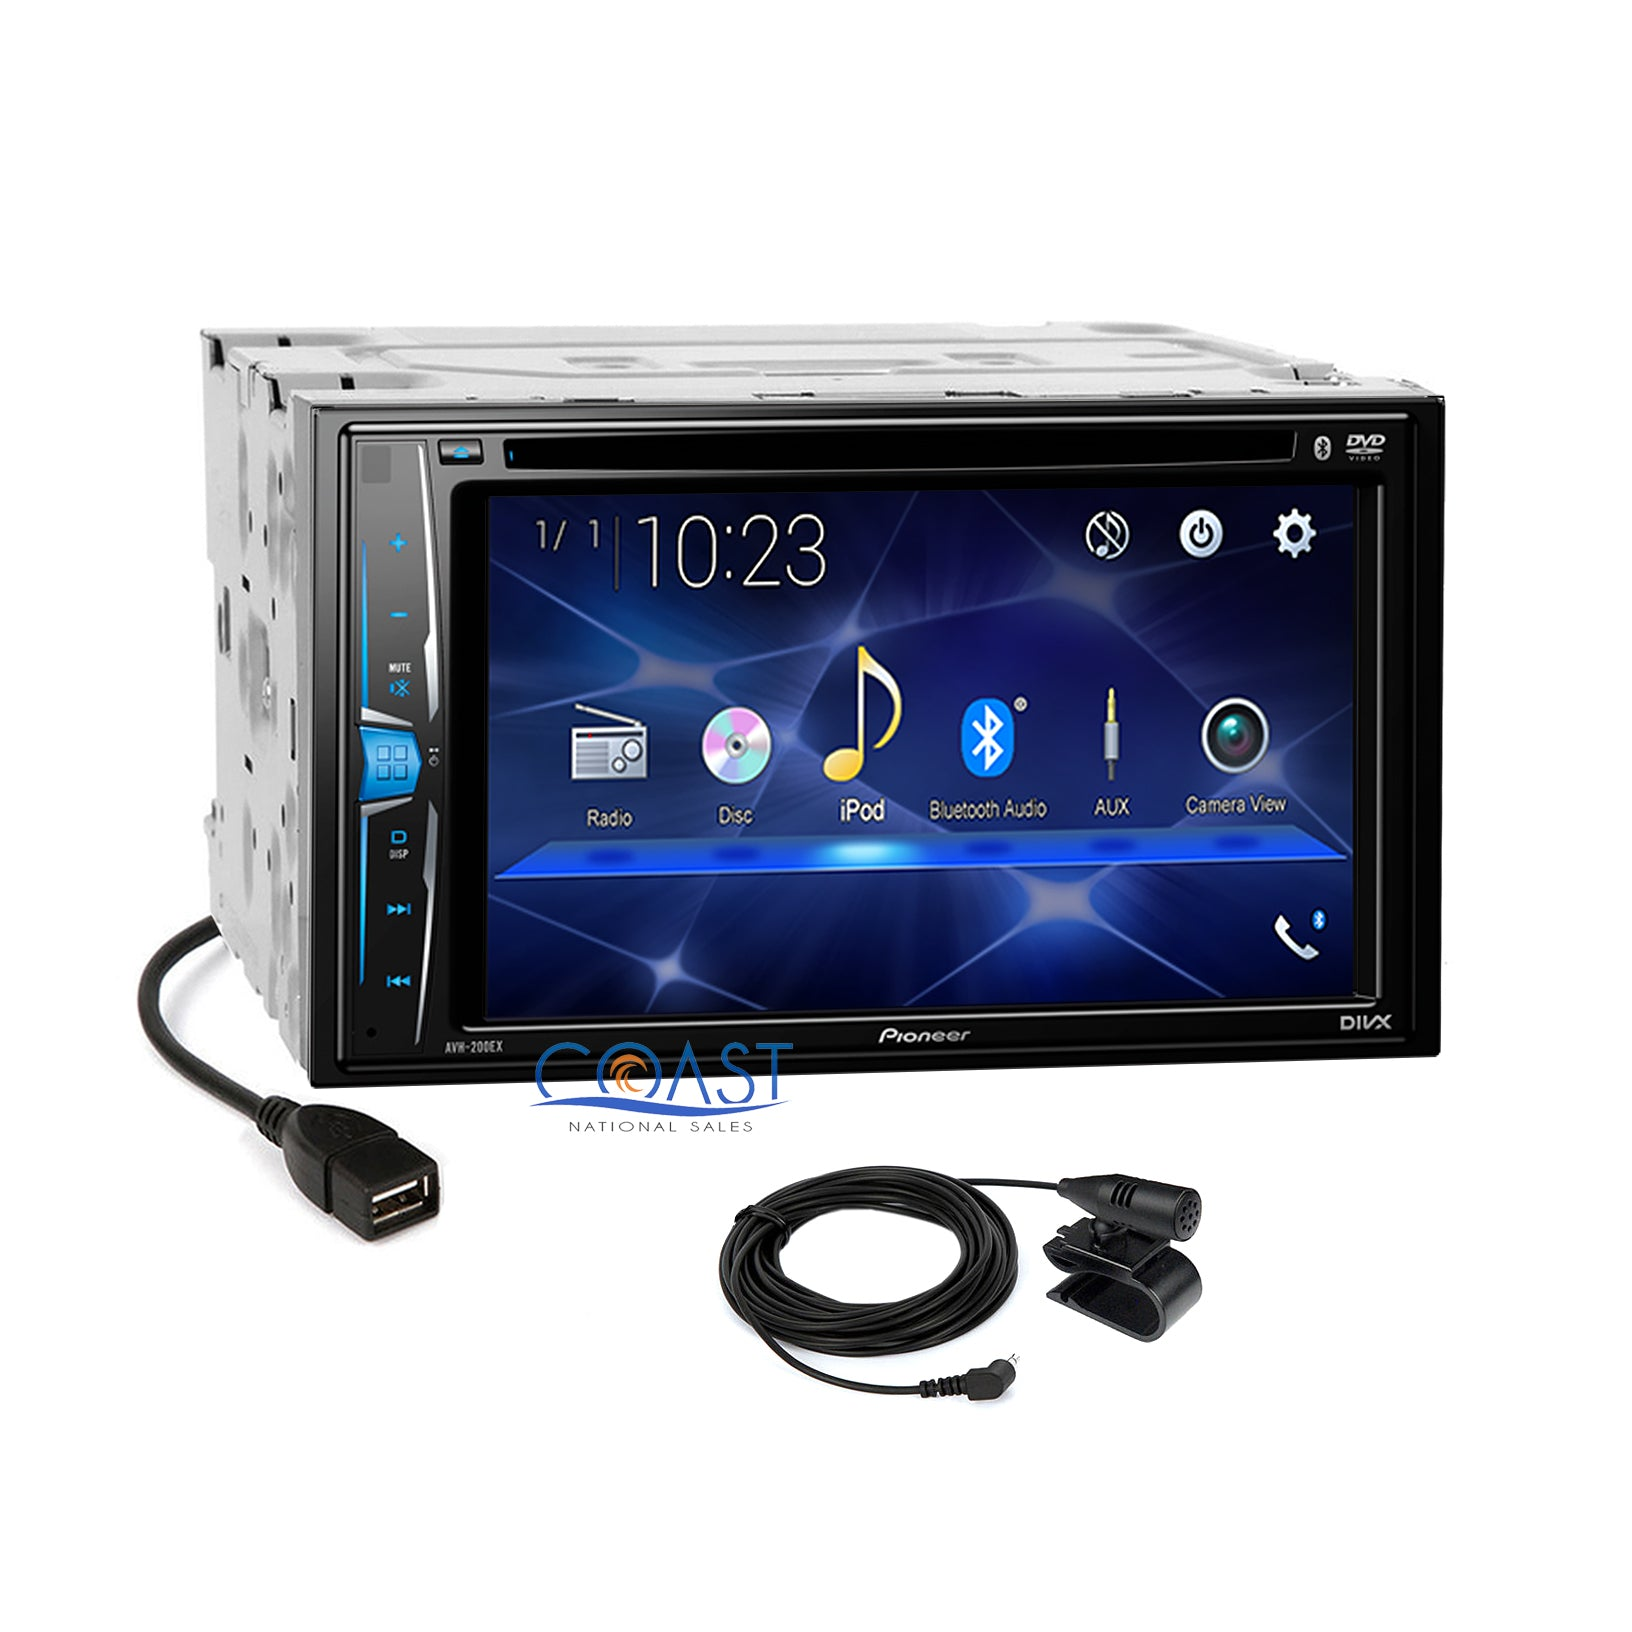 Pioneer 2018 DVD USB Stereo Silver Dash Kit Harness for